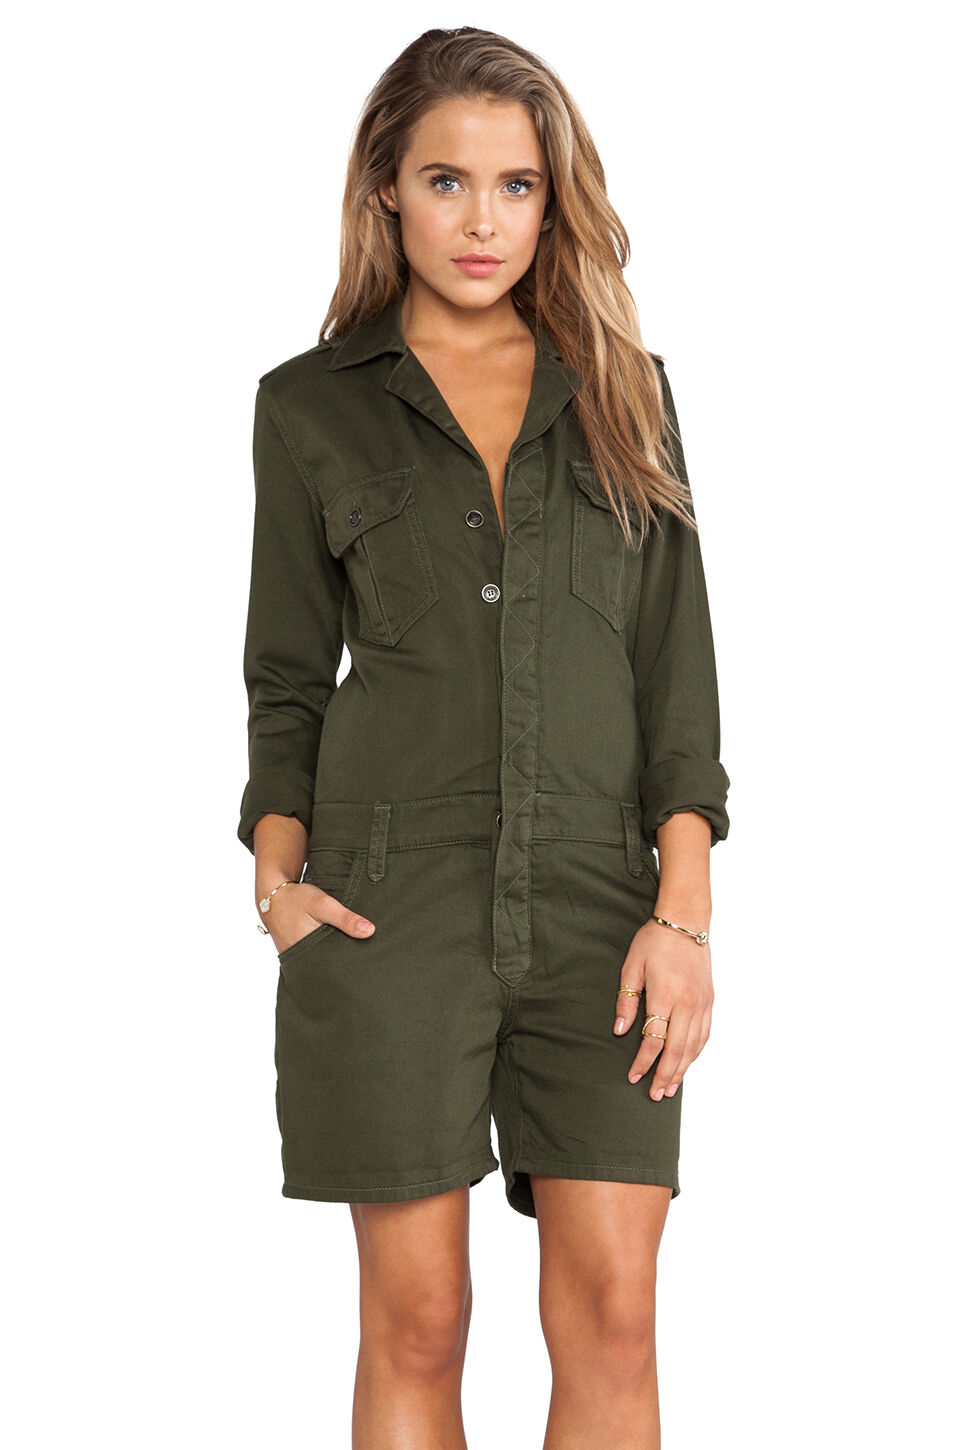 NWT JOE'S JEANS SzS MILITARY SHIRTTAIL LONG SLEEVE COTTON ROMPER OLIVE GREEN 198